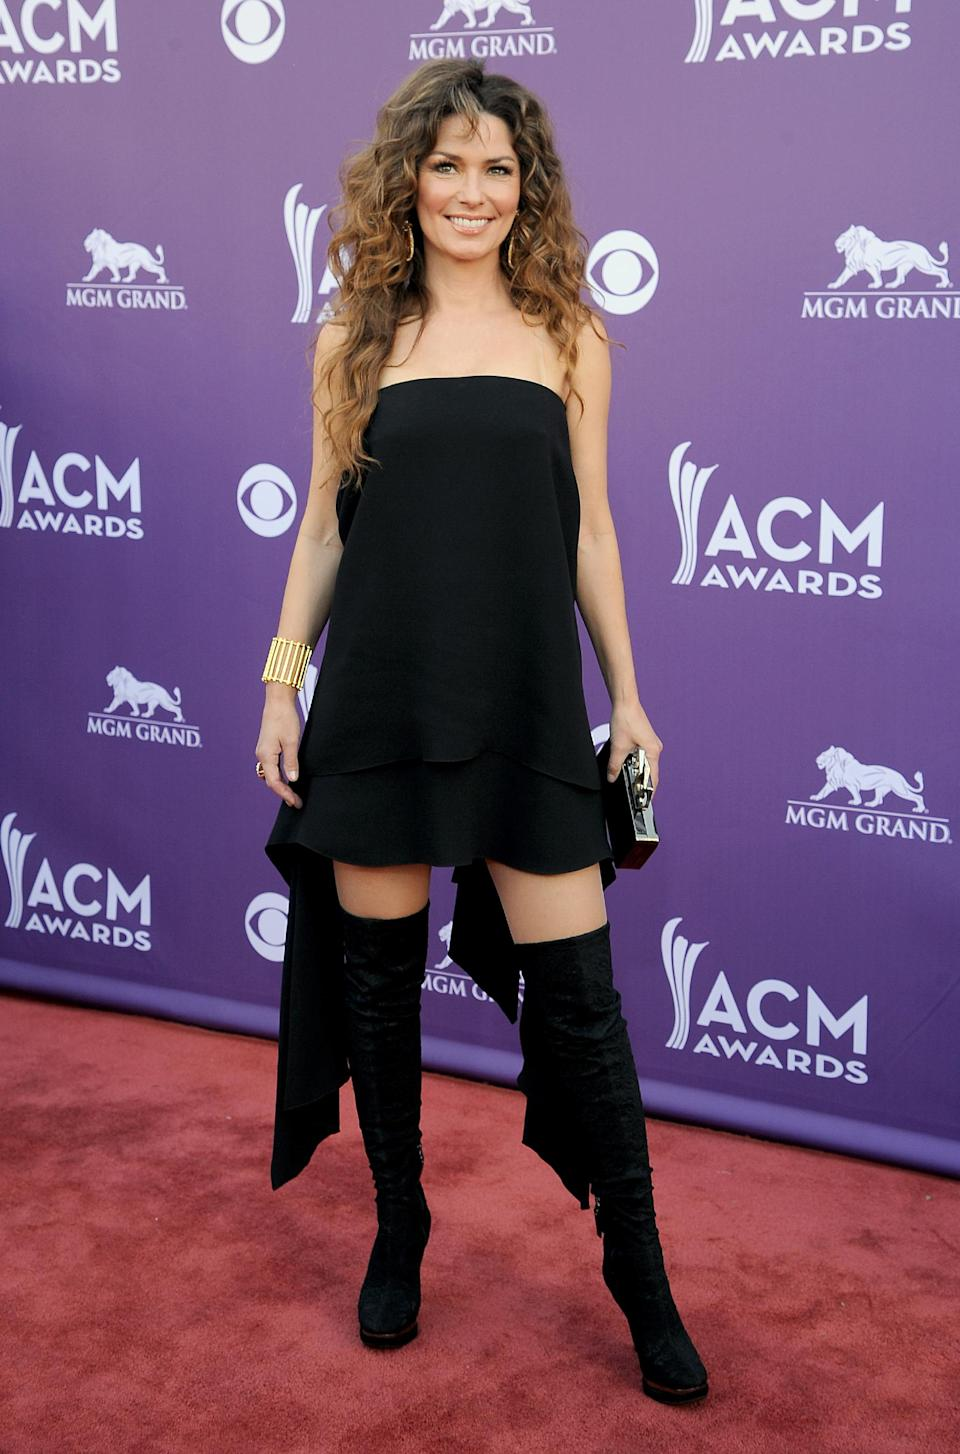 Singer Shania Twain arrives at the 48th Annual Academy of Country Music Awards at the MGM Grand Garden Arena in Las Vegas on Sunday, April 7, 2013. (Photo by Al Powers/Invision/AP)